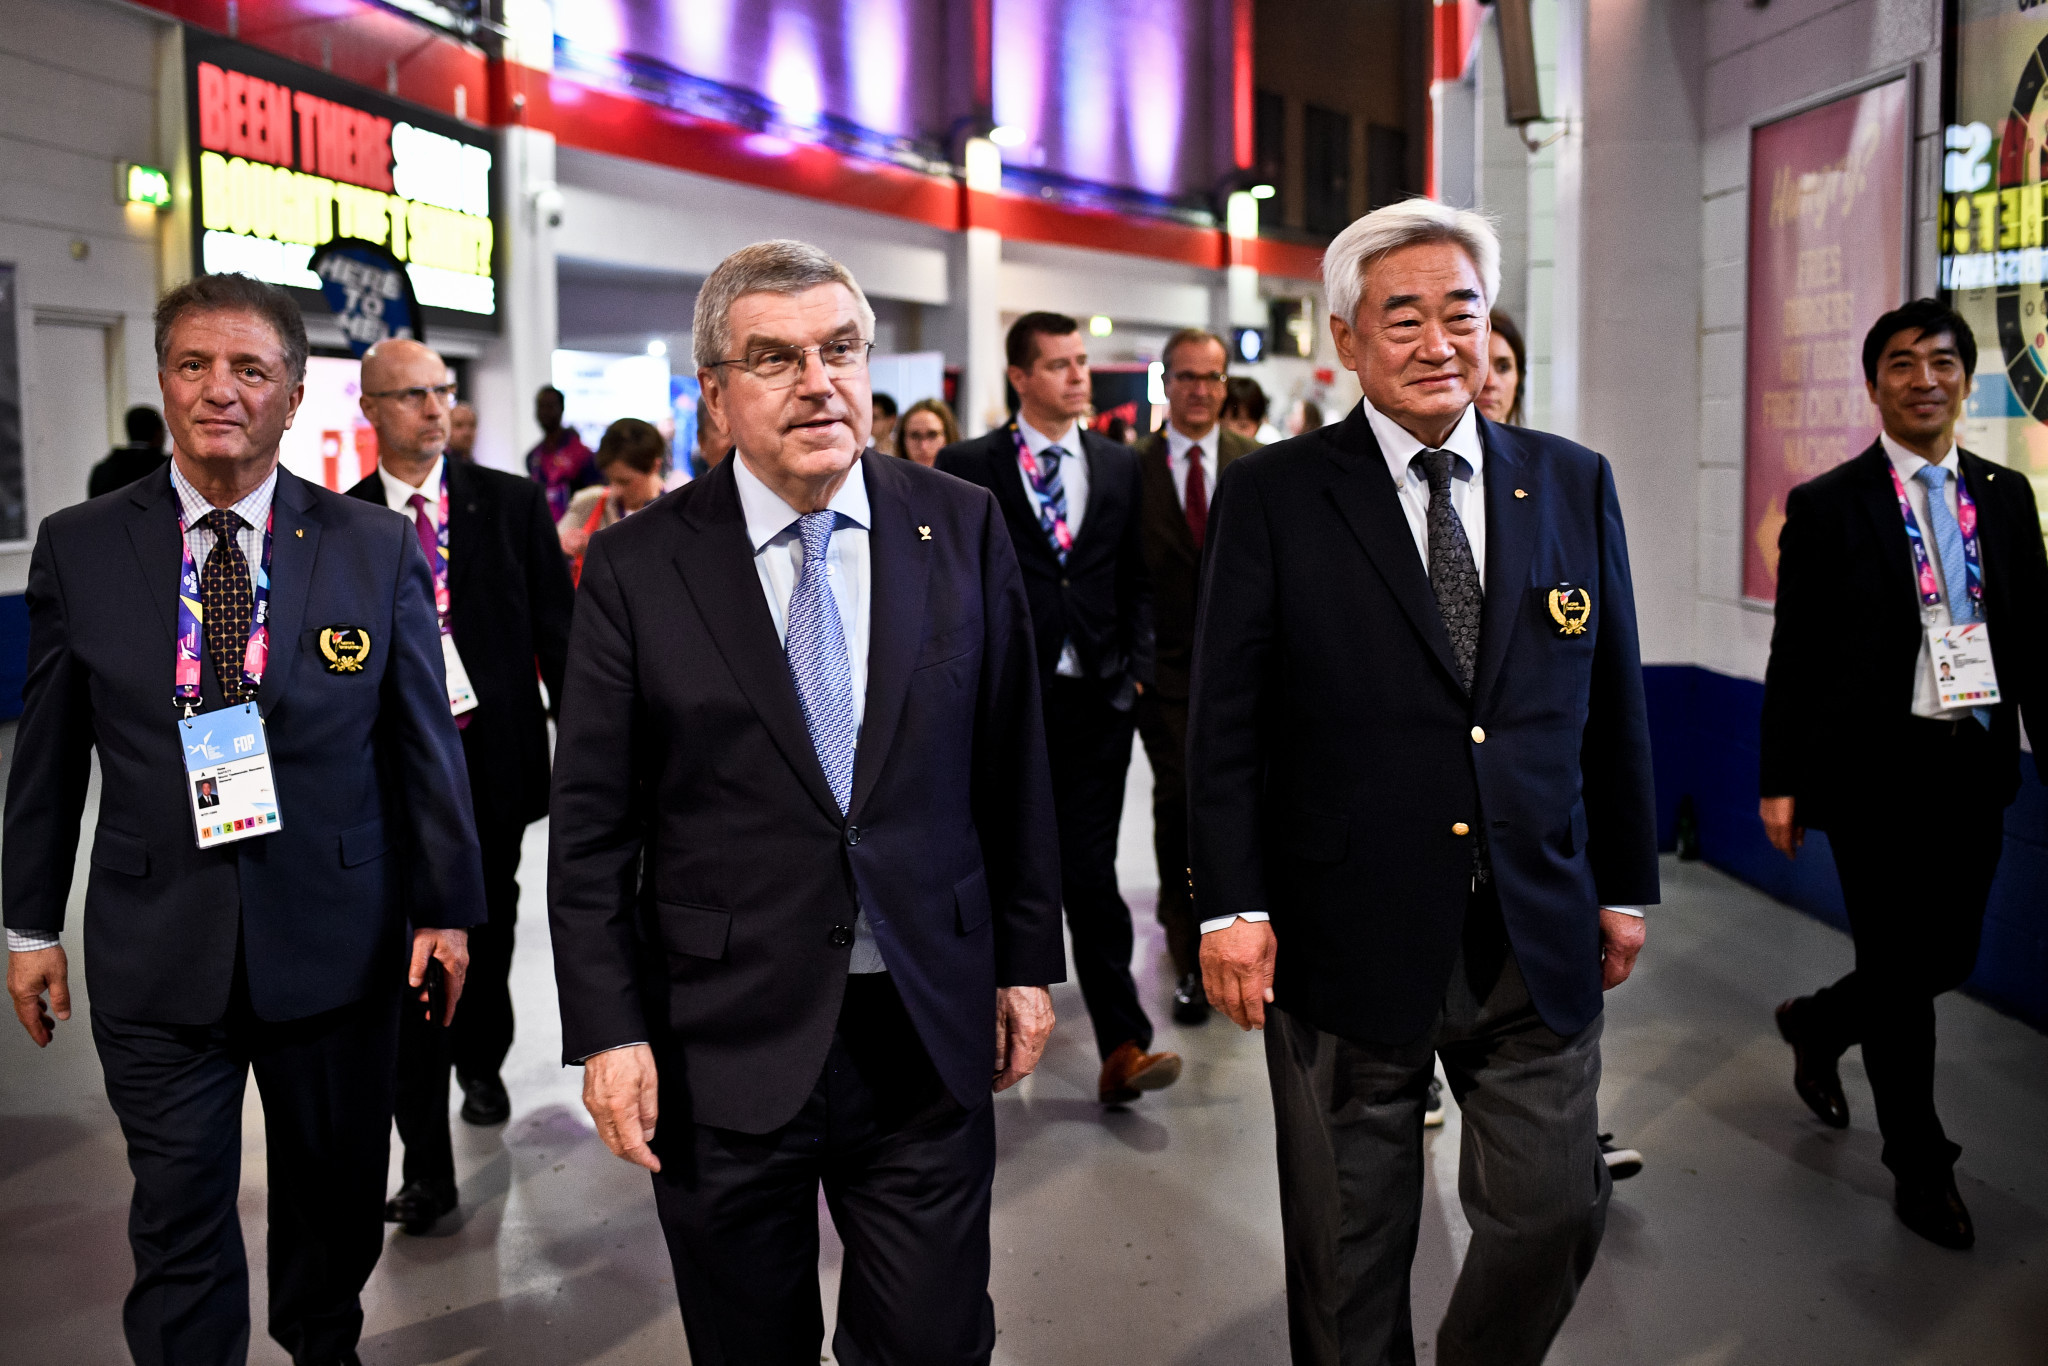 IOC President Thomas Bach visited Manchester Arena for the 2019 World Taekwondo Championships ©World Taekwondo